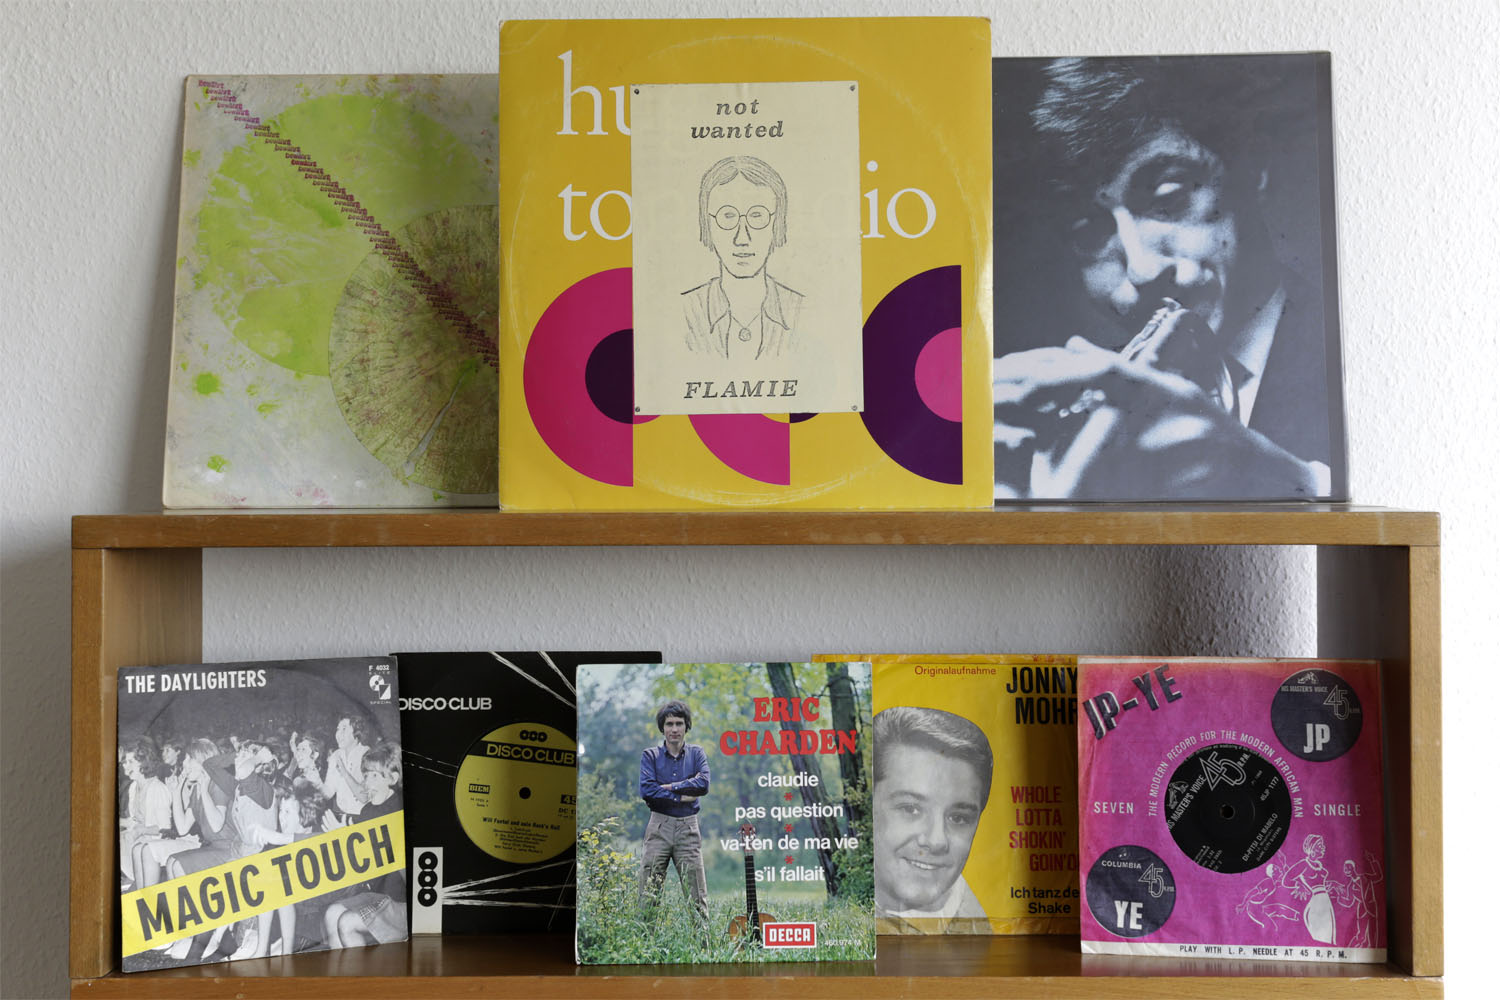 "°Franz Koglmann/Bill Dixon  ""Opium for Franz""  Pipe Records PR 152 °Flamie  ""Not Wanted""  Private Press, Hug °Odeon Hot Heads  ""Margie/There'll come a day""  Private Press, Shellac °The Daylighters  ""Magic Touch""  Elite Special F4032 °Will Fantel  ""Will Fantel und sein Rock'n Roll""  Disco Club DC 1709 °Eric Charden  ""Claudie""  EP Decca 460.974 °Jonny Mohr  ""Whole lotta Shokin' goin'on""  Layola L 17-210 °Dark City Sisters  ""Segompieno""  His master's voice 45JP 1177"